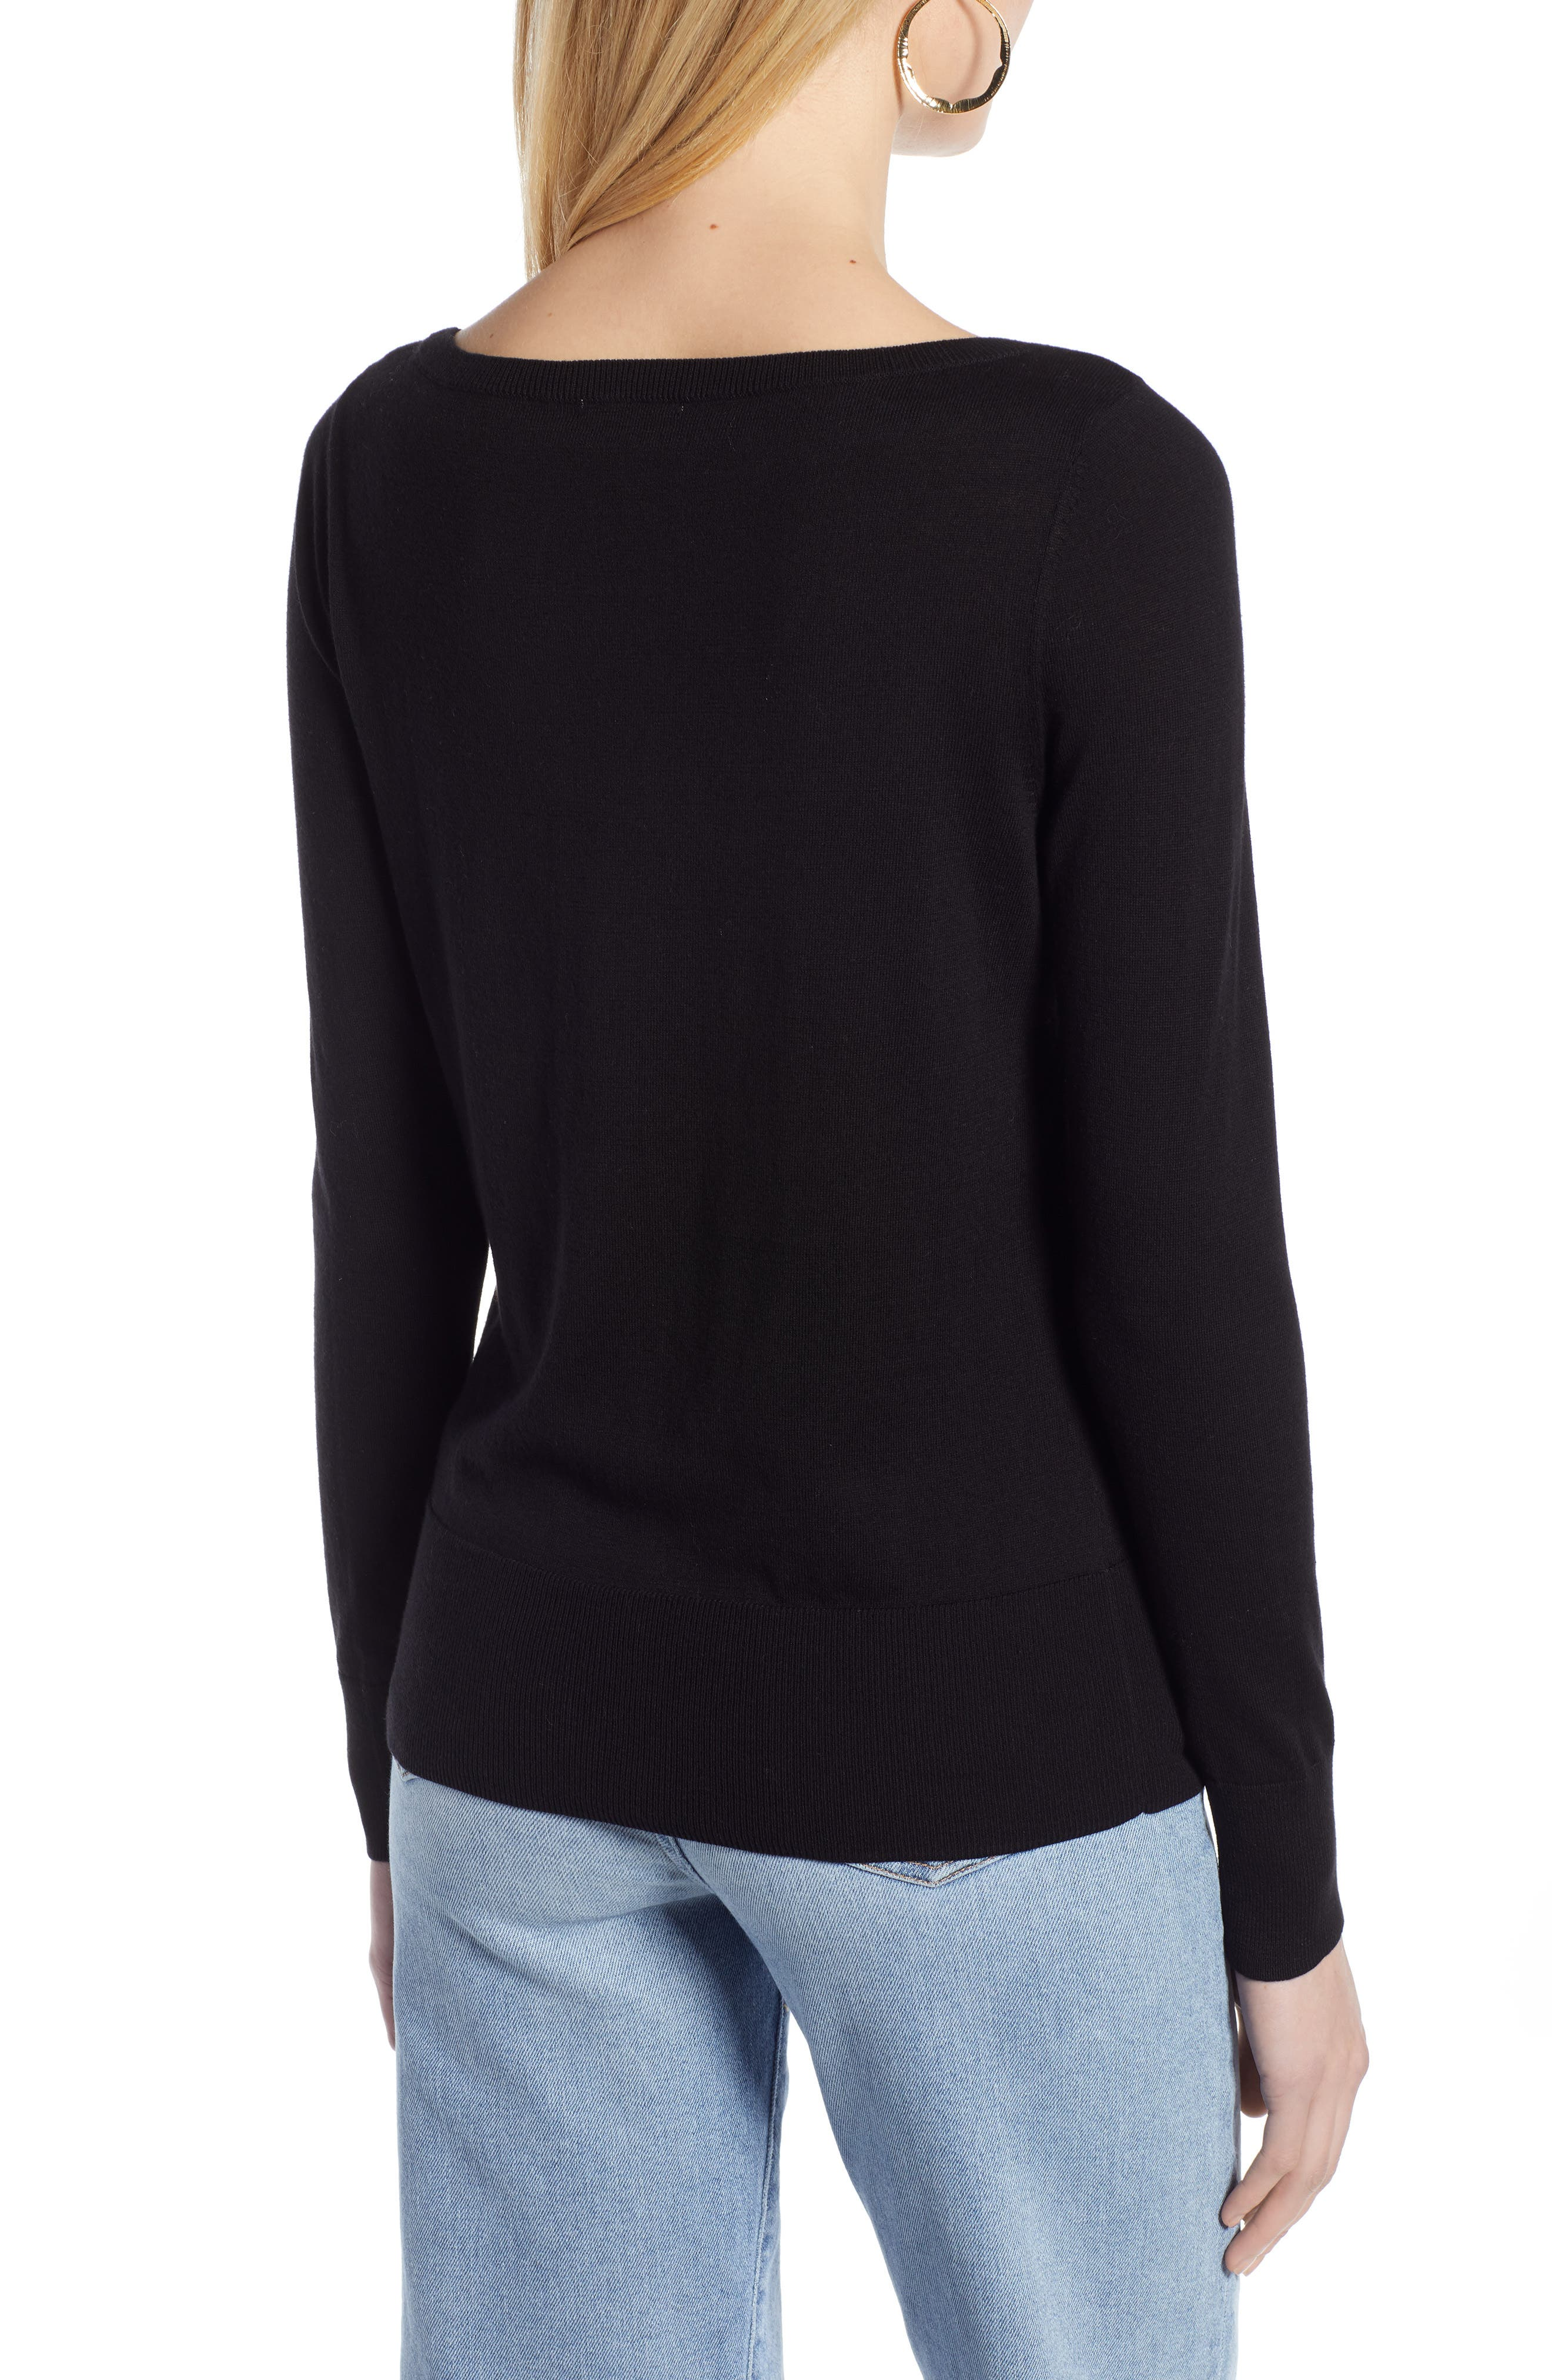 HALOGEN<SUP>®</SUP>, Bateau Neck Sweater, Alternate thumbnail 2, color, BLACK